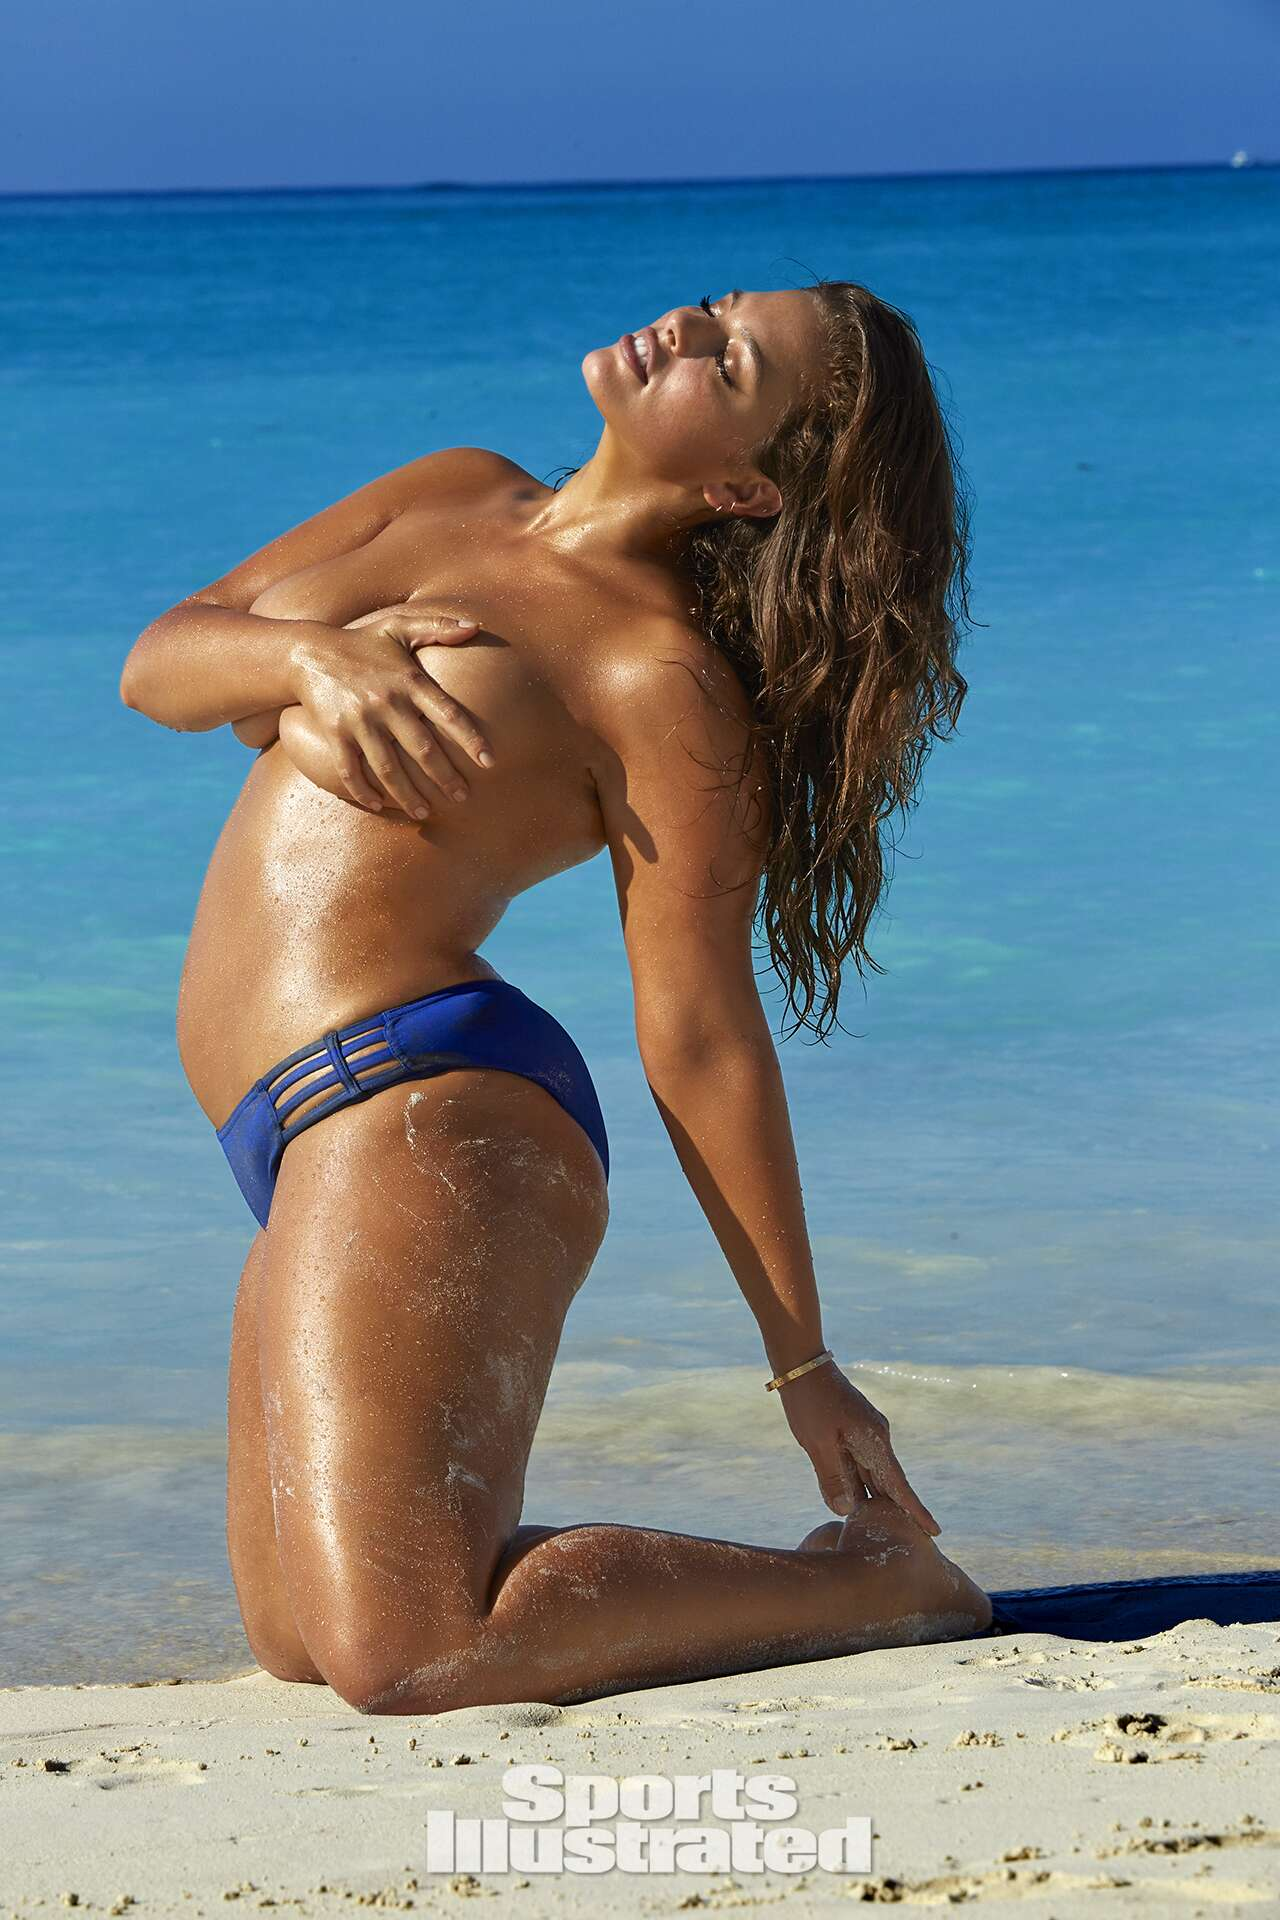 Ashley Graham was photographed by James Macari in Turks & Caicos. Swimsuit by JAG.